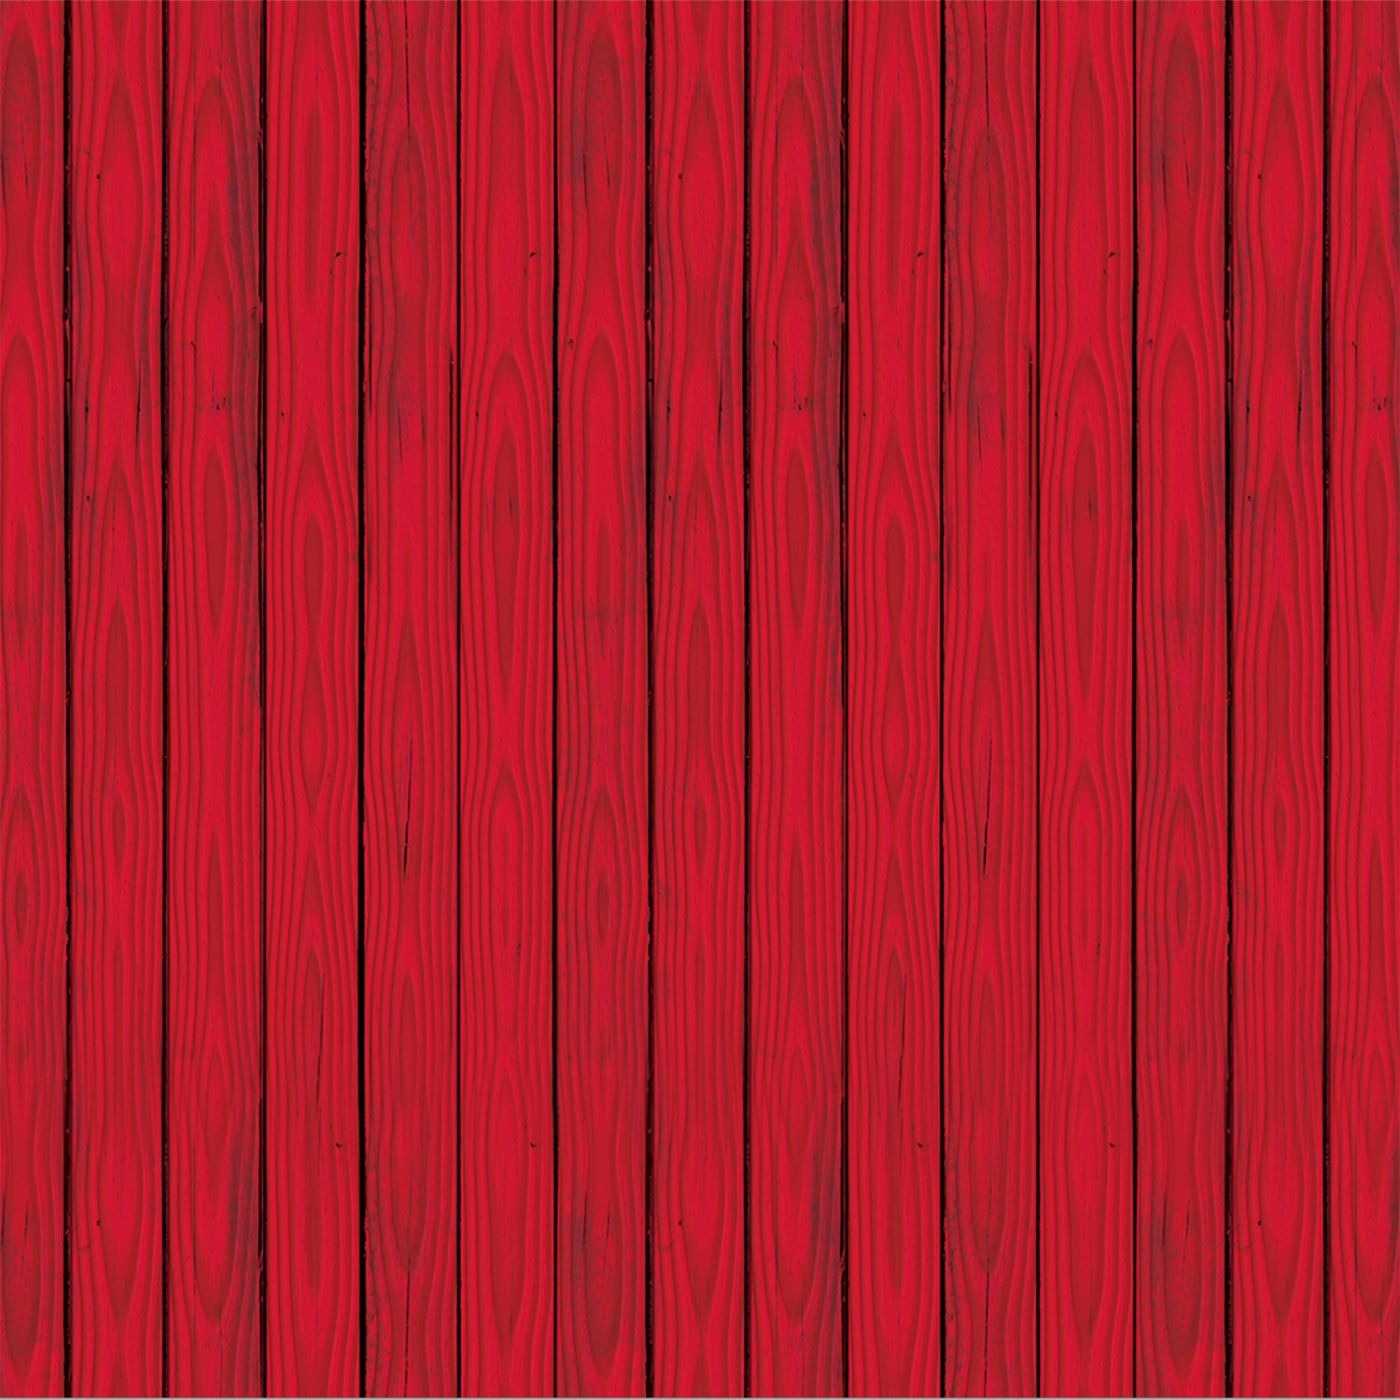 Red Barn Siding Backdrop (6) image